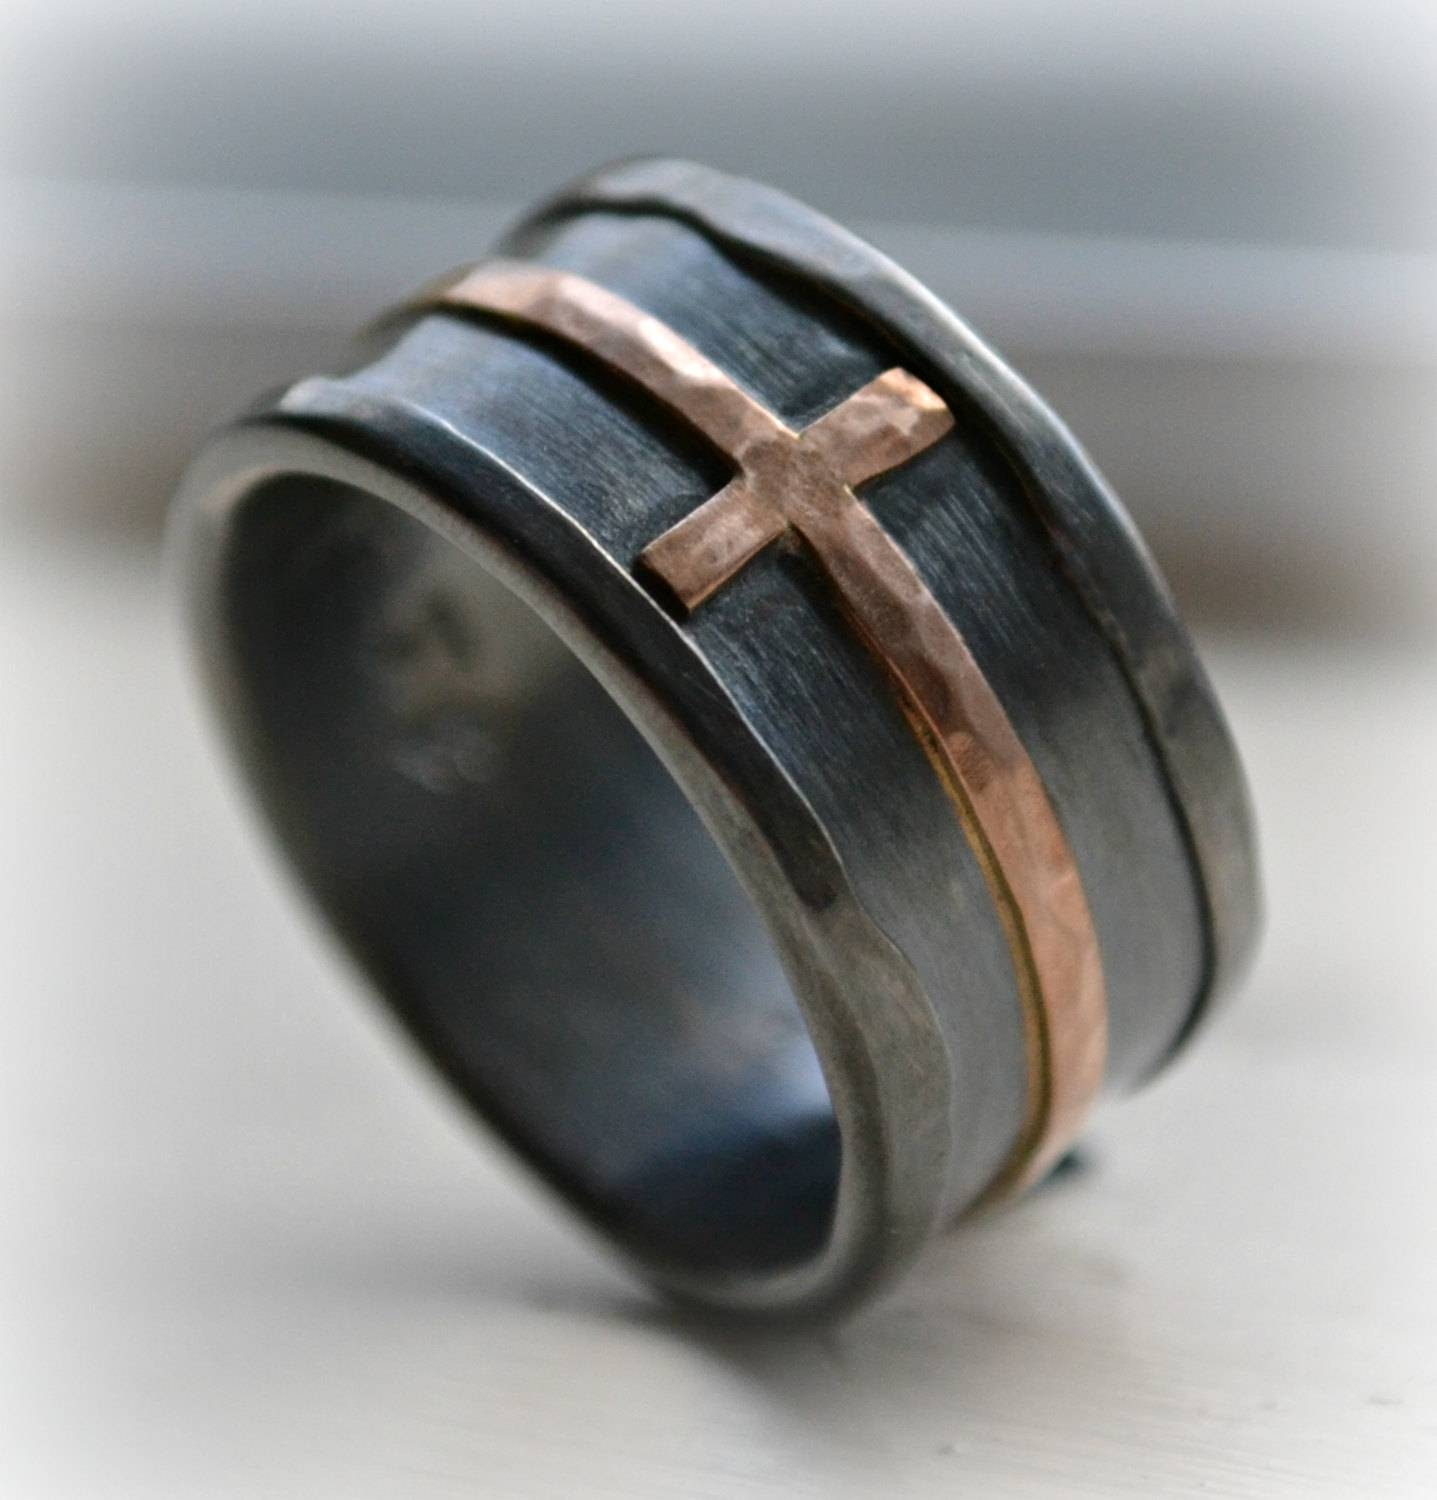 Mens Cross Wedding Band Rustic Hammered Cross Ring Oxidized With Men's Wedding Bands With Cross (View 7 of 15)